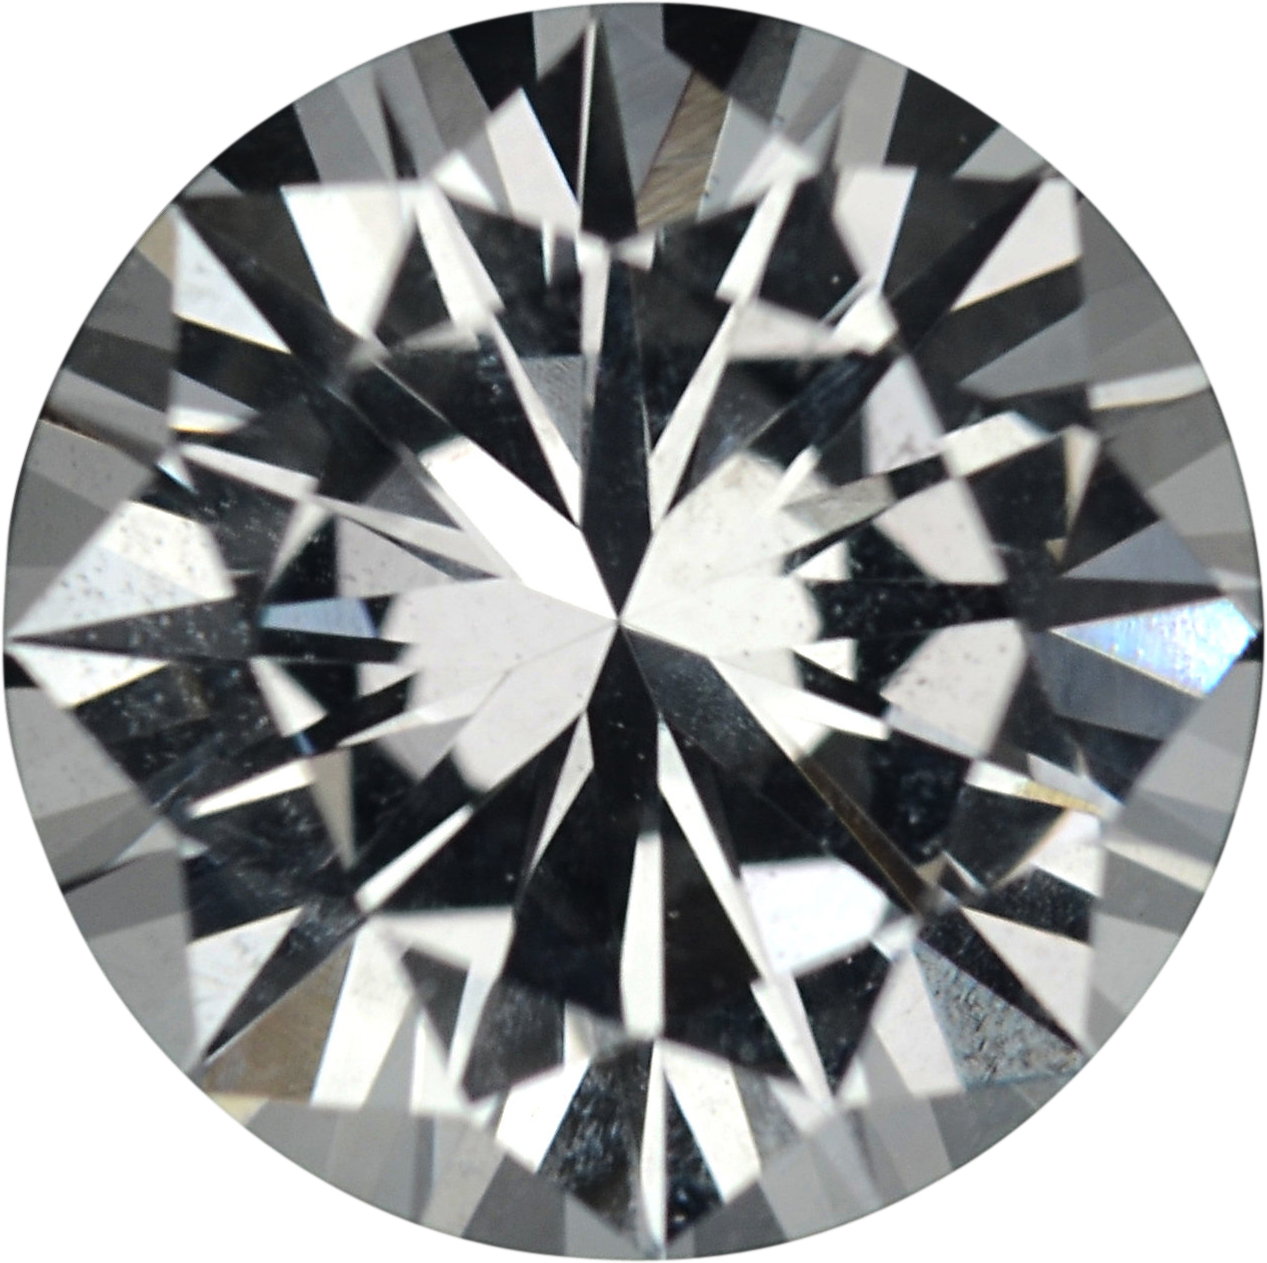 1.23 carats White Loose Sapphire Gemstone in Round Cut, 6.52 mm